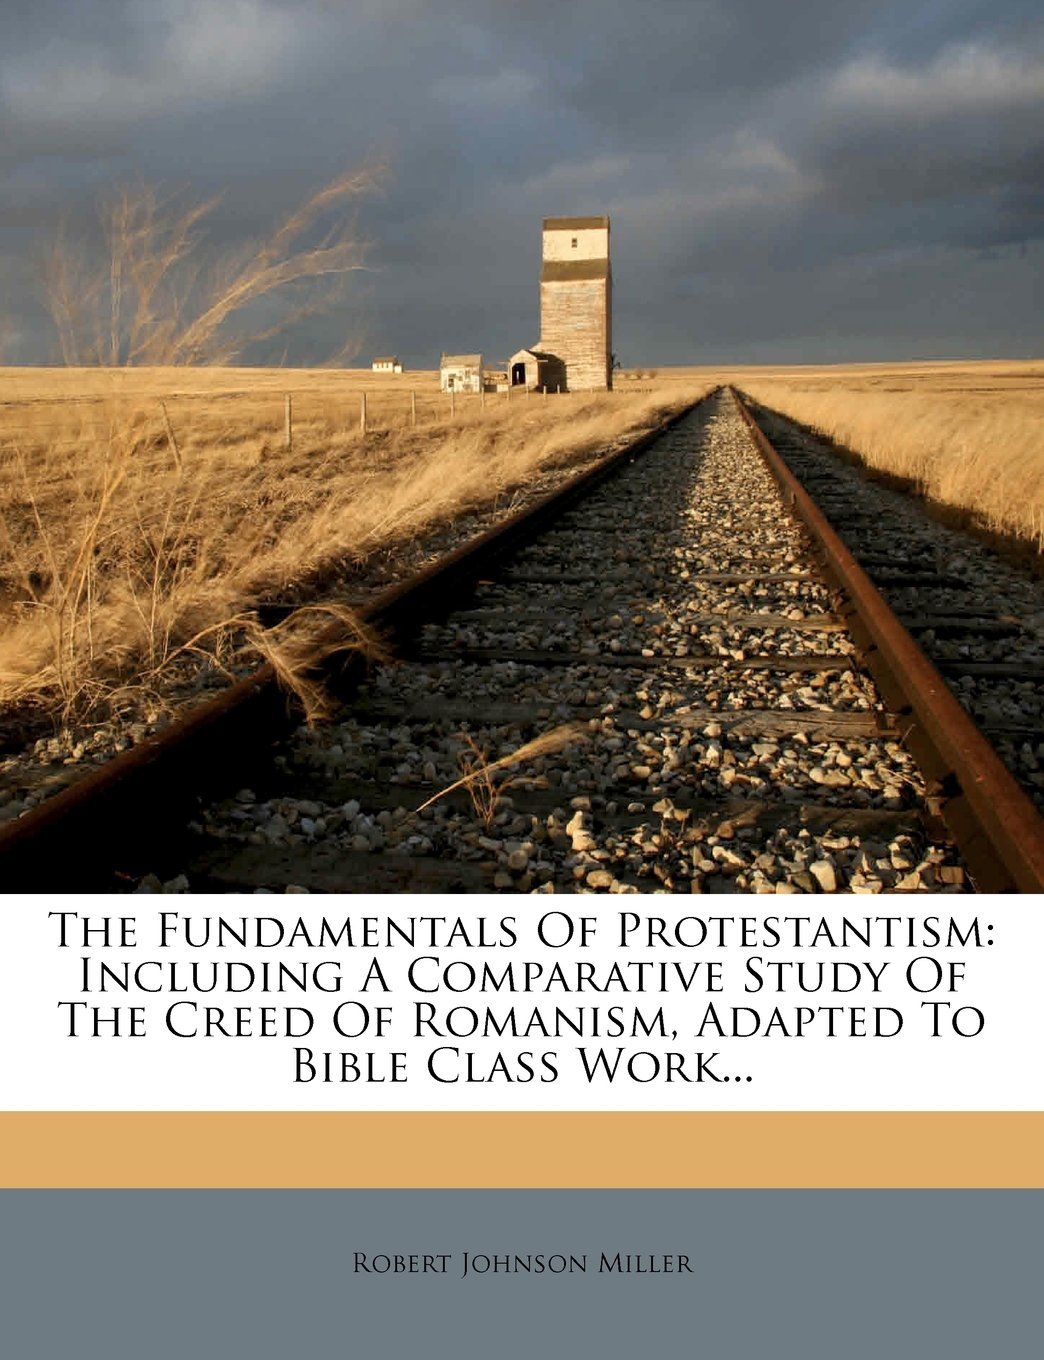 The Fundamentals Of Protestantism: Including A Comparative Study Of The Creed Of Romanism, Adapted To Bible Class Work... ebook